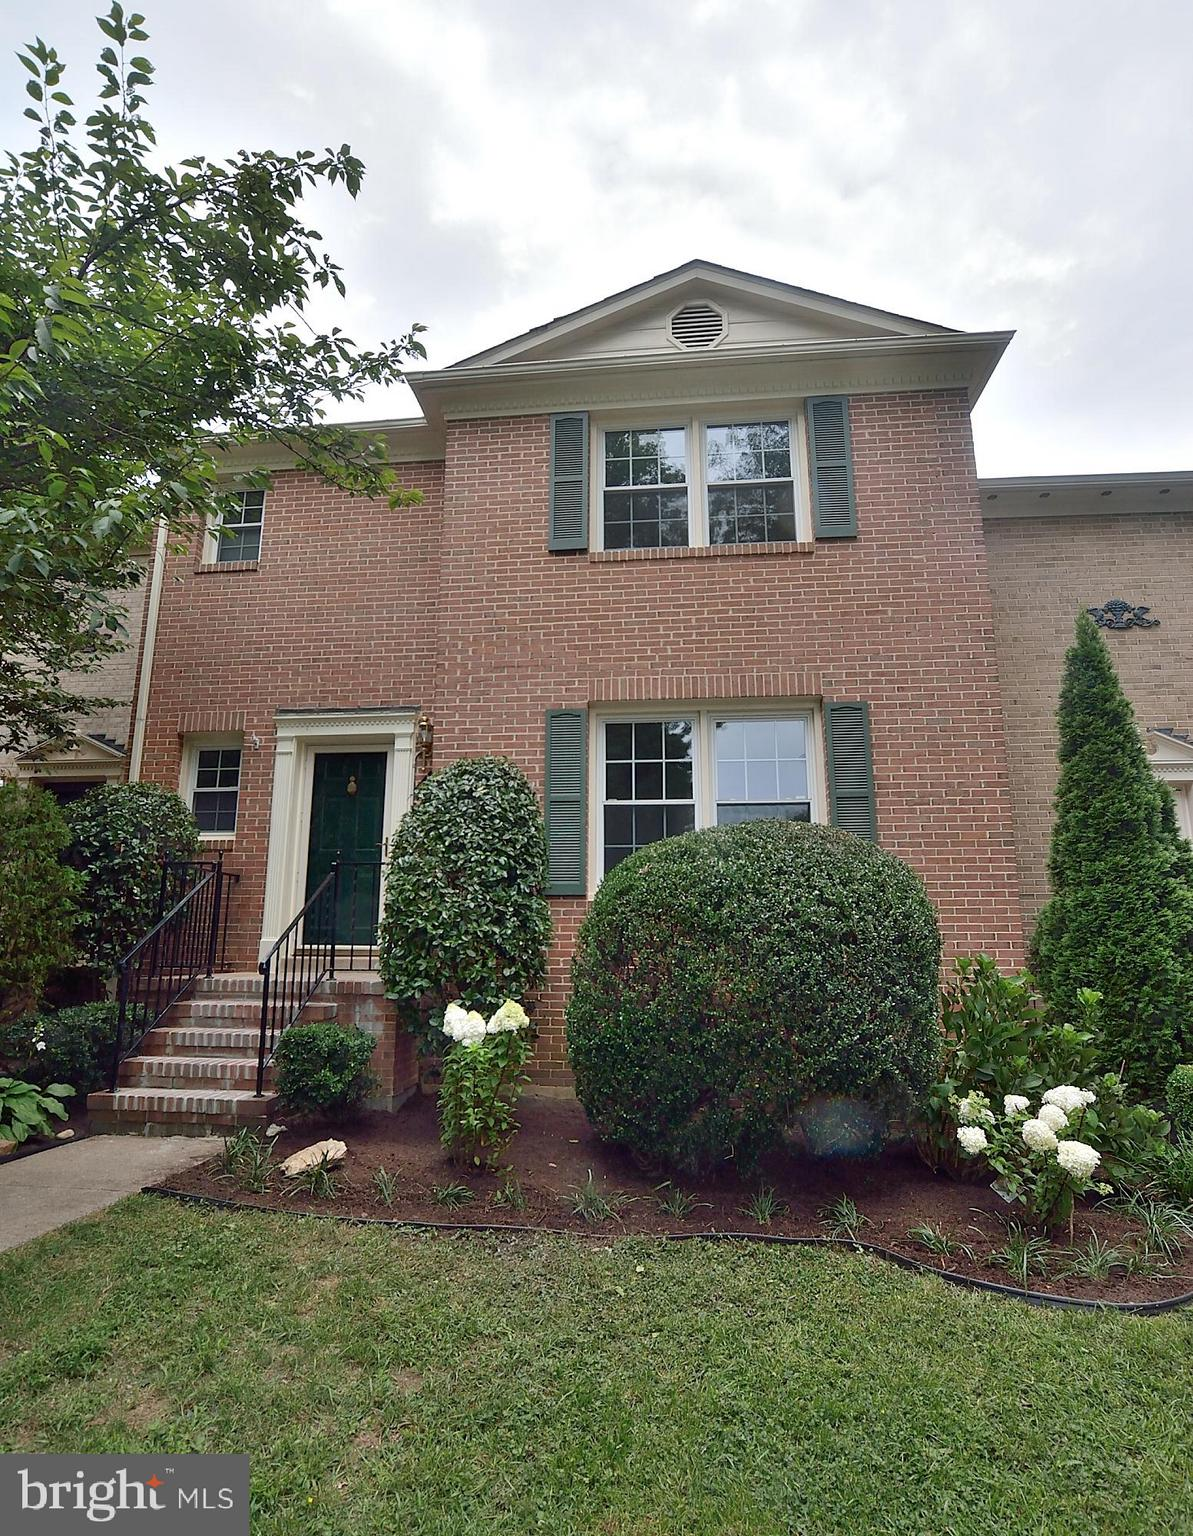 ALL BRICK SPACIOUS TOWNHOUSE WITH 1832 SQ. FT. FIN ON TOP TWO LEVELS PLUS A FIN. LL WITH FIREPLACE AND WALKOUT TO PRIVATELY FENCED LOT.  UPGRADED TOP TO BOTTOM